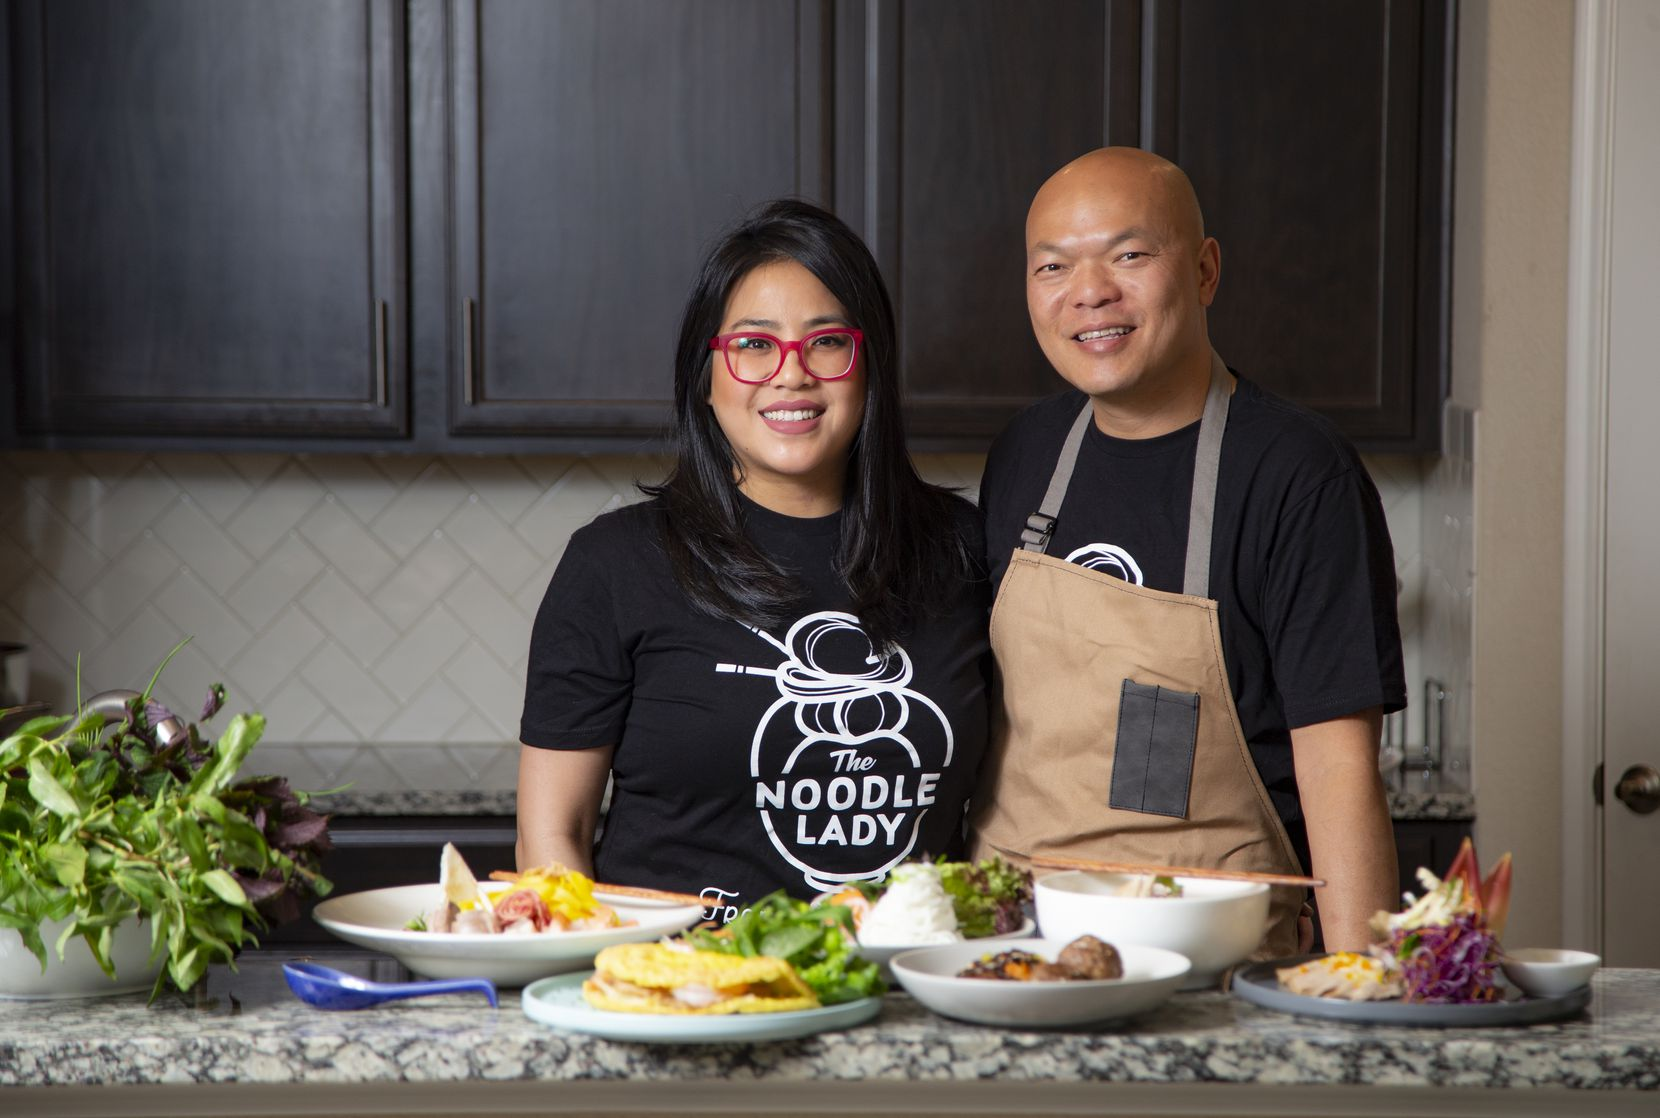 Jennifer Ong-Sikhattana (The Noodle Lady) and her husband, John, pose for a photo in their kitchen in McKinney.